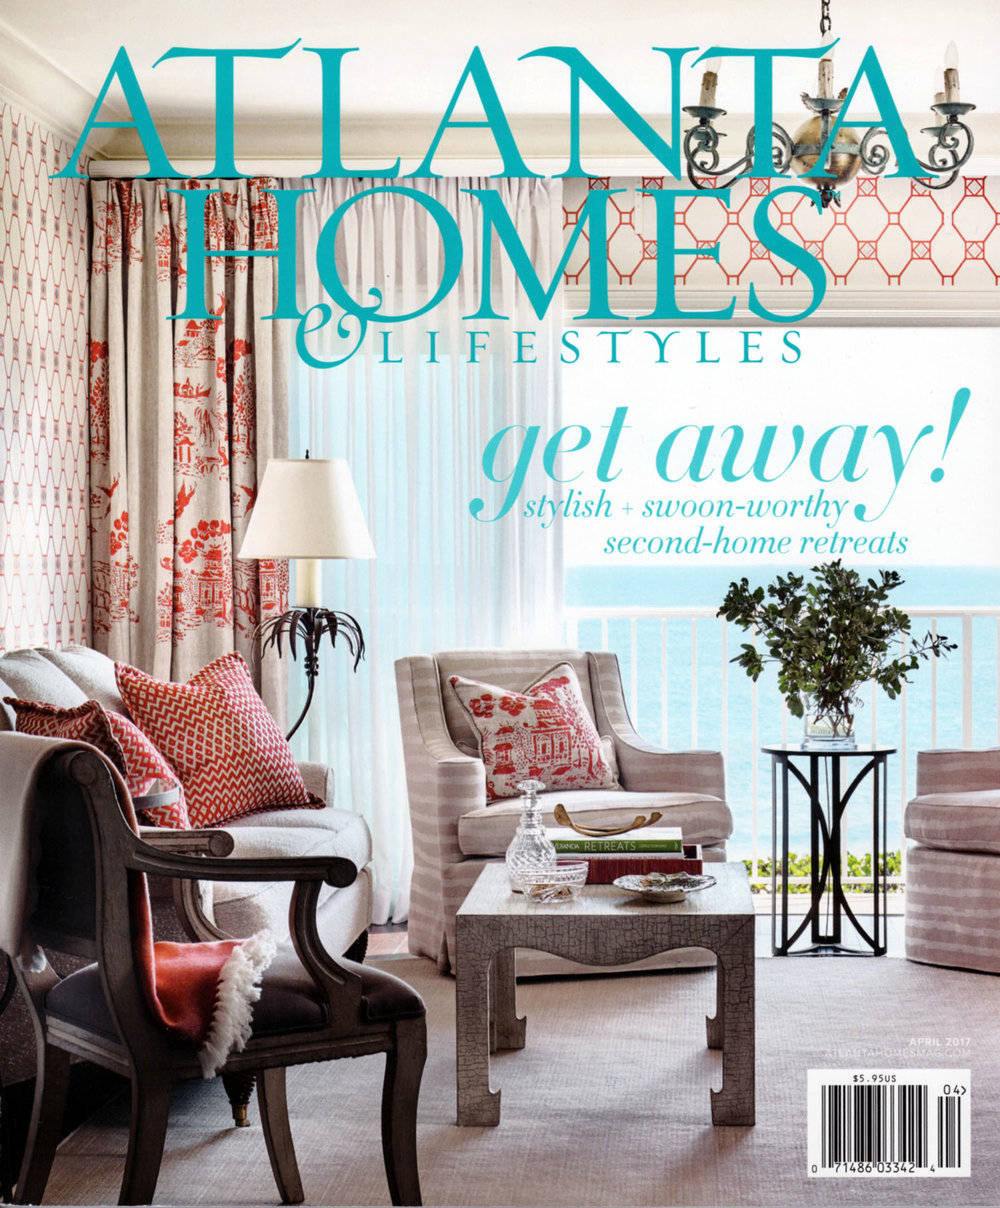 Atlanta Homes & Lifestyles   April 2017